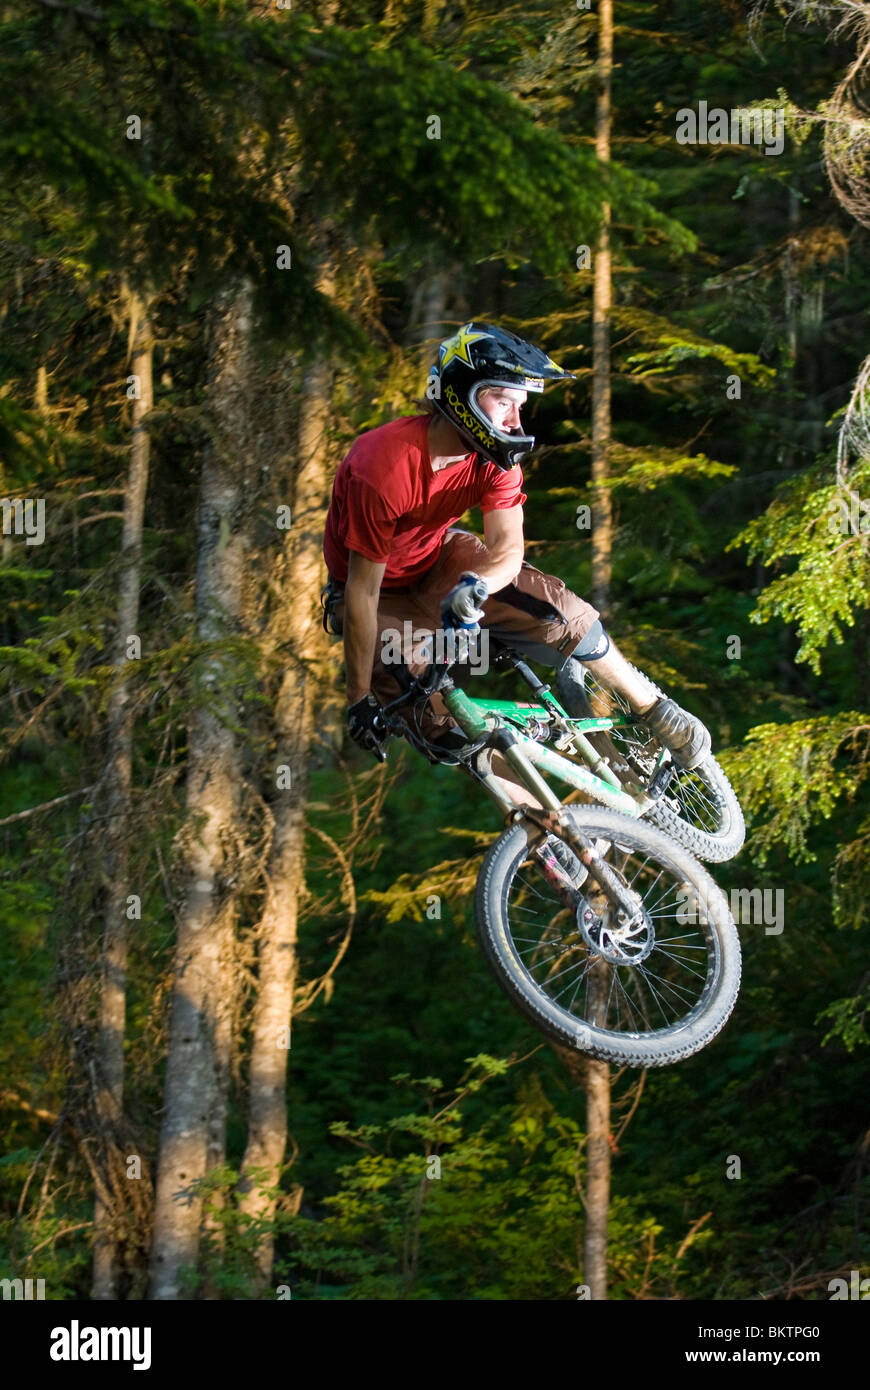 Downhill Mountain Biking in the World Famous Whistler Bike ...